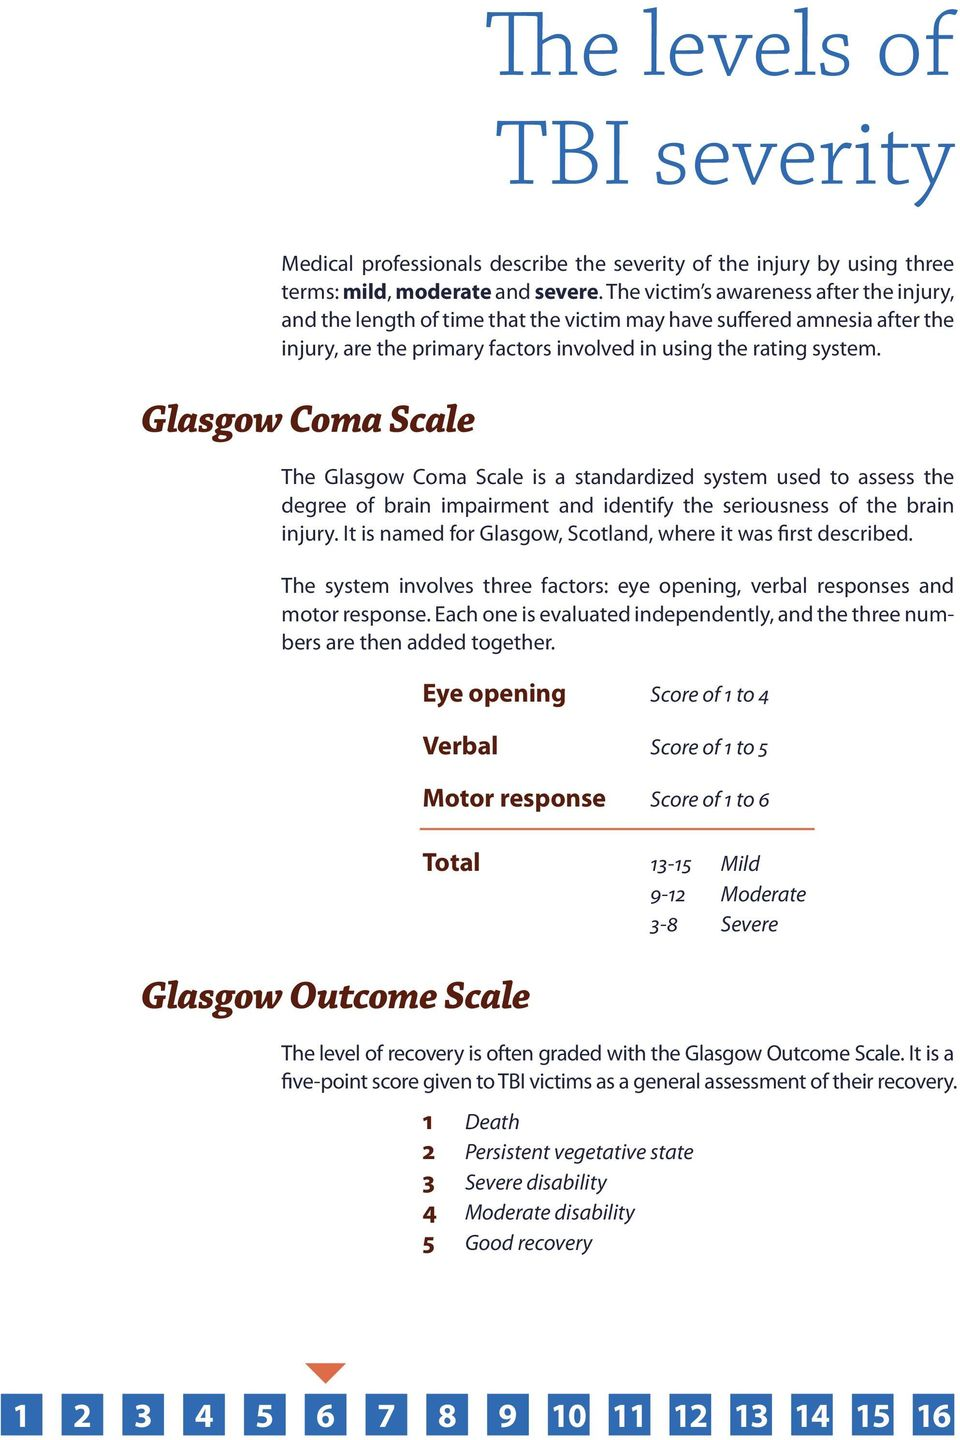 Glasgow Coma Scale The Glasgow Coma Scale is a standardized system used to assess the degree of brain impairment and identify the seriousness of the brain injury.